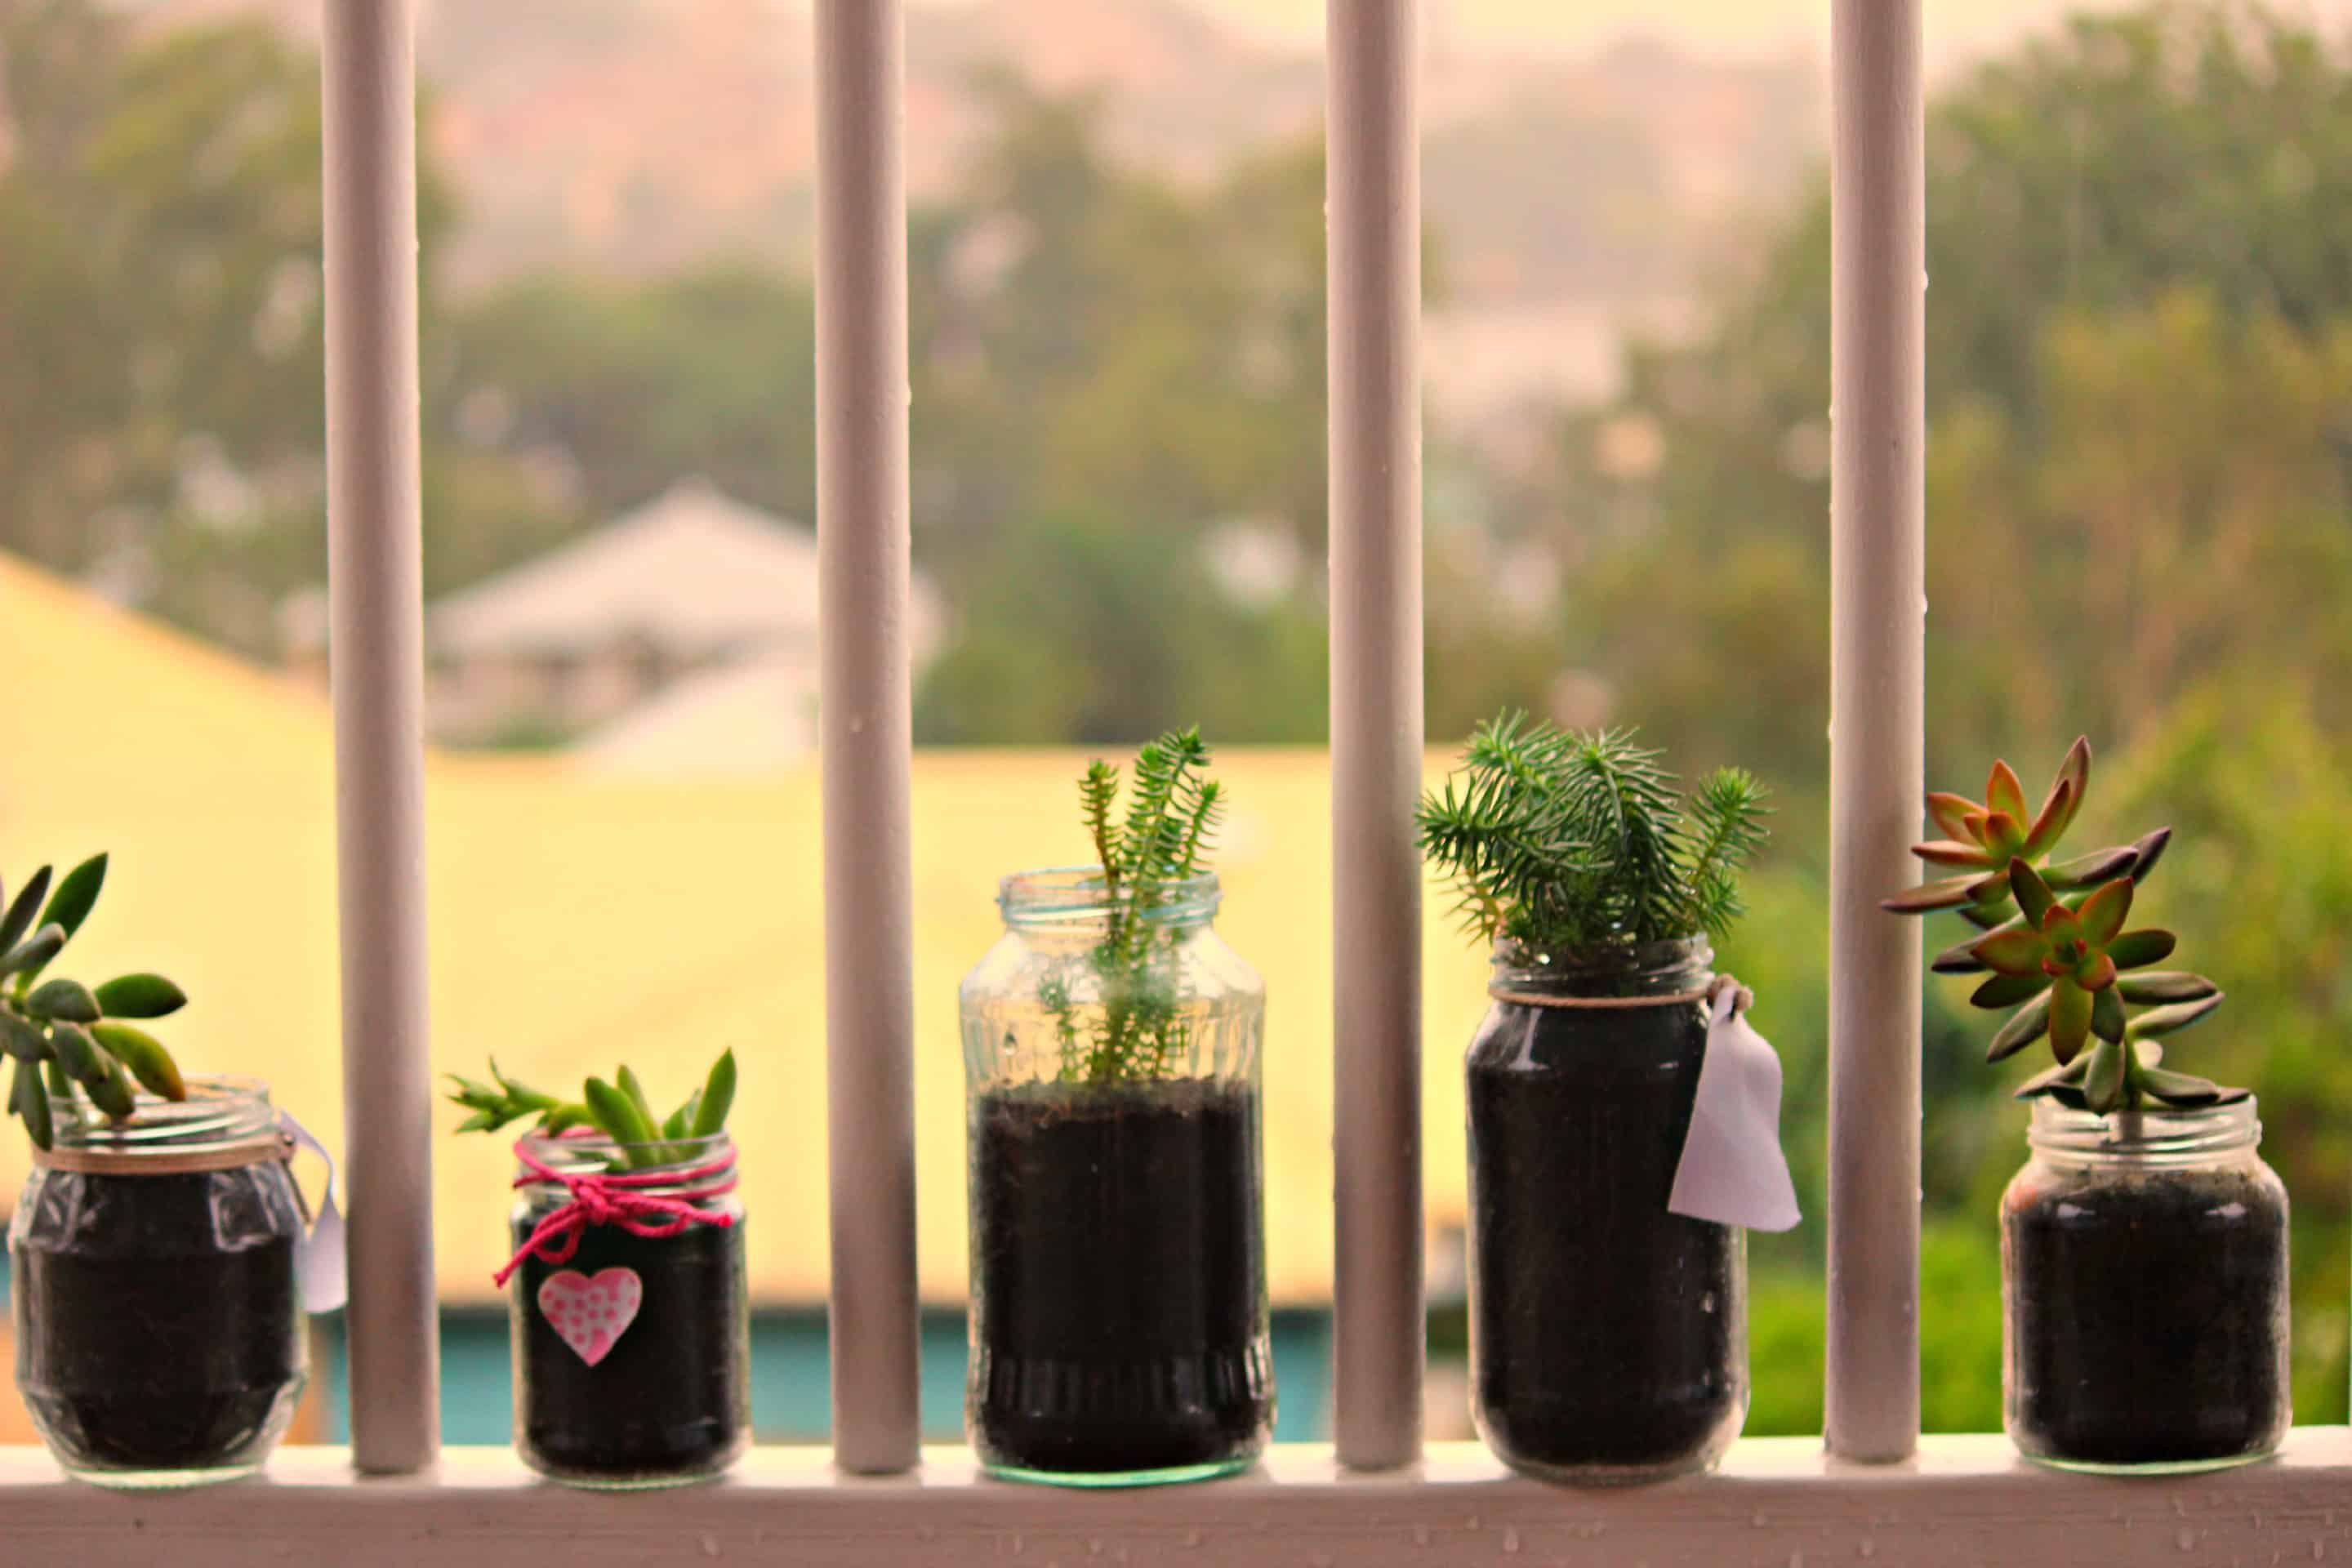 #TeamAmazima: Succulents Can Change Lives